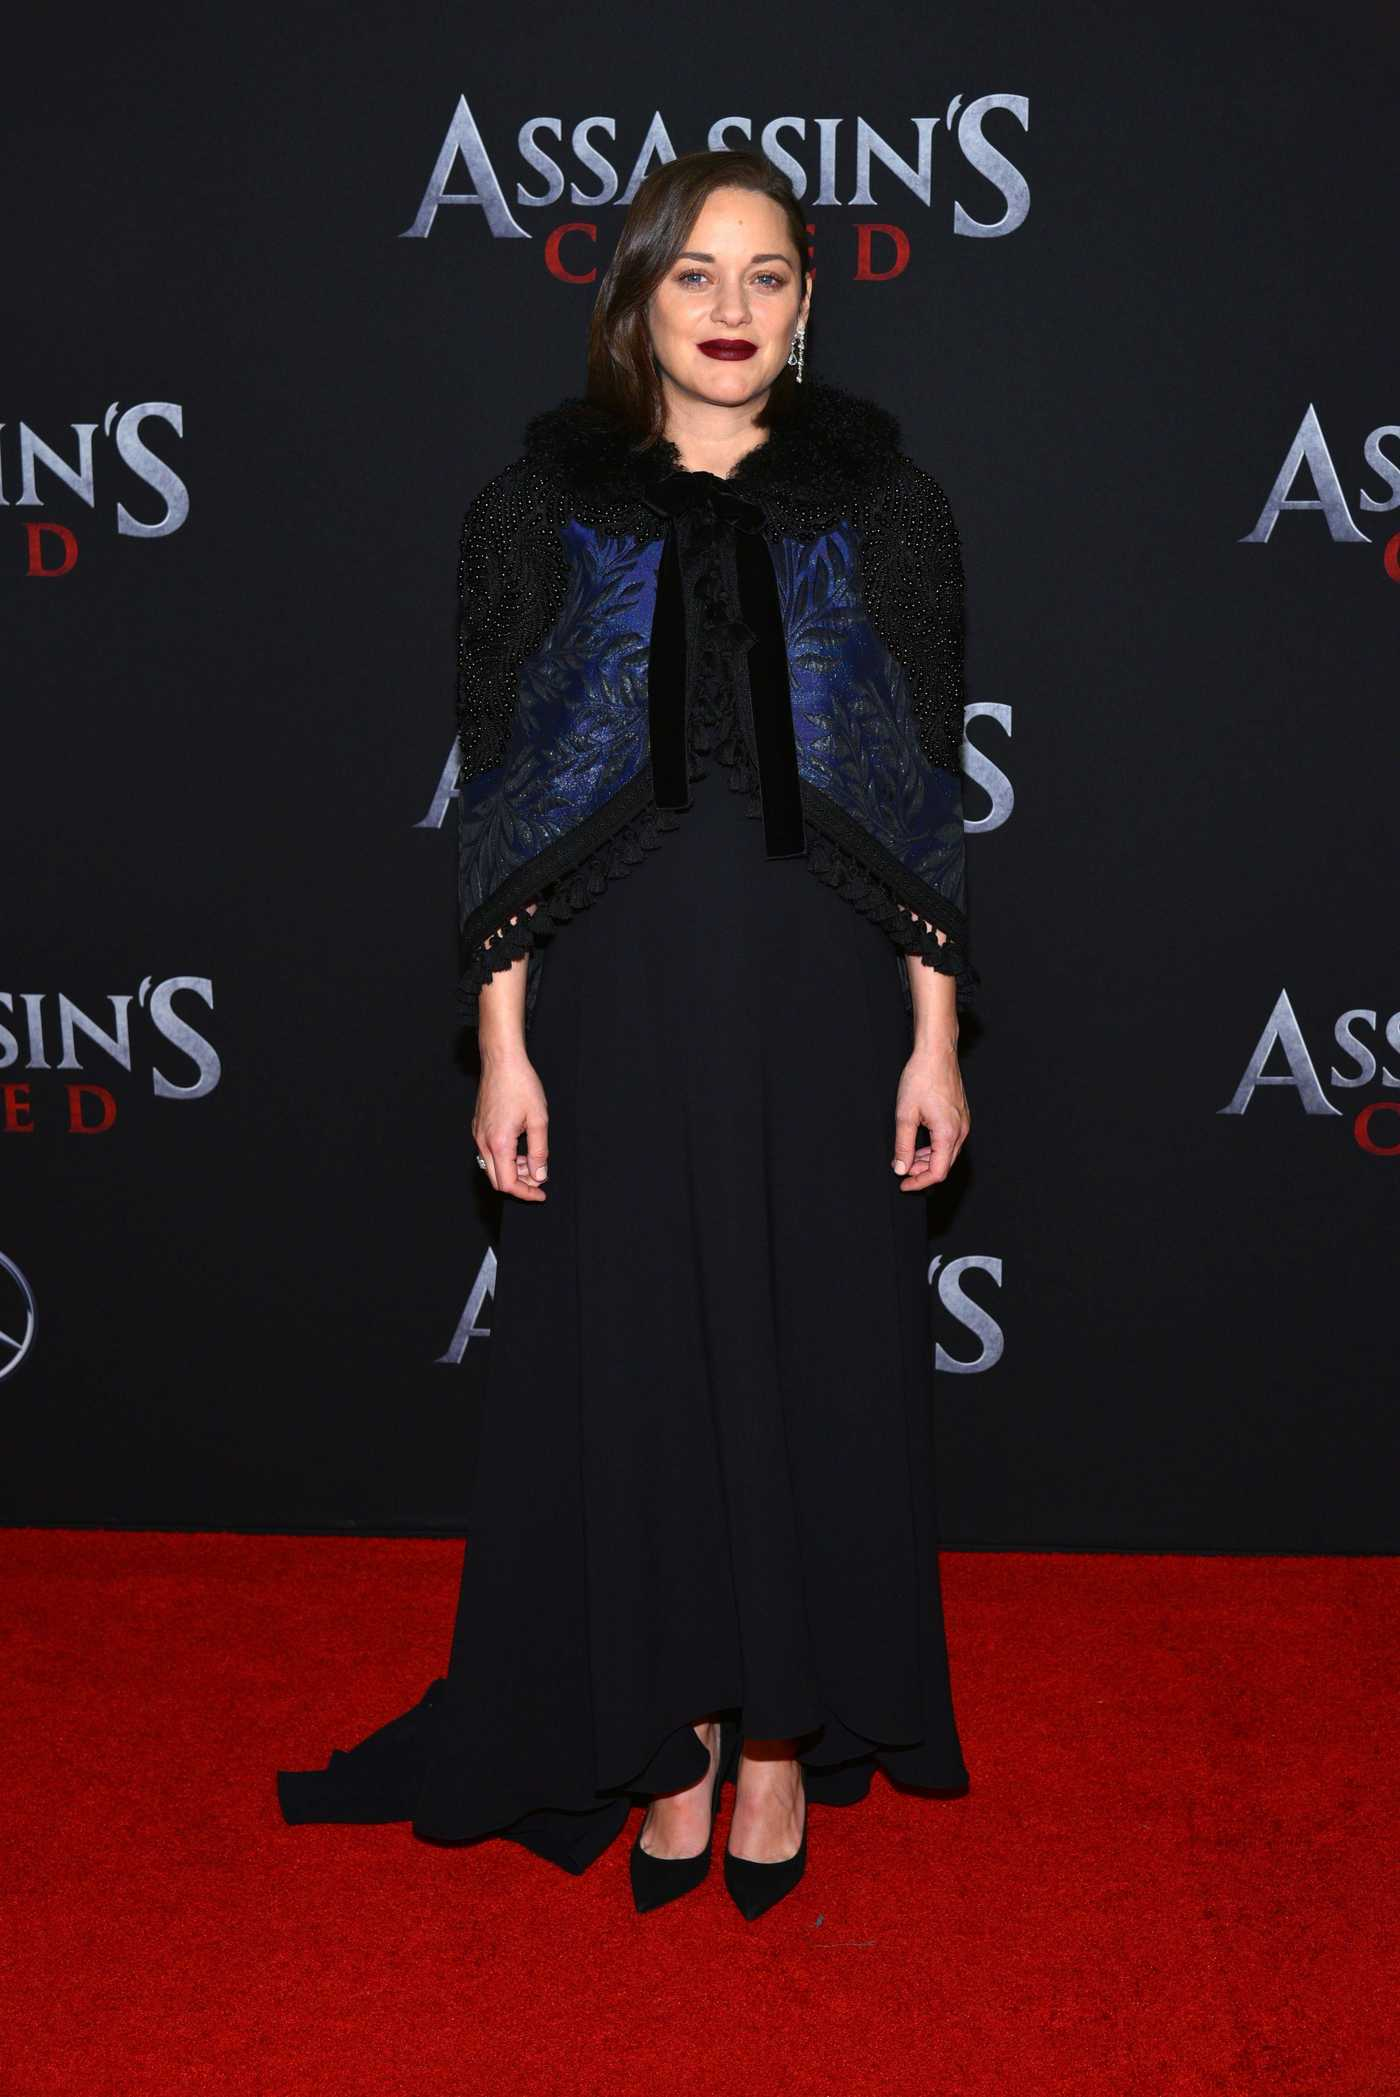 Marion Cotillard at Assassin's Creed Premiere in New York City 12/13/2016